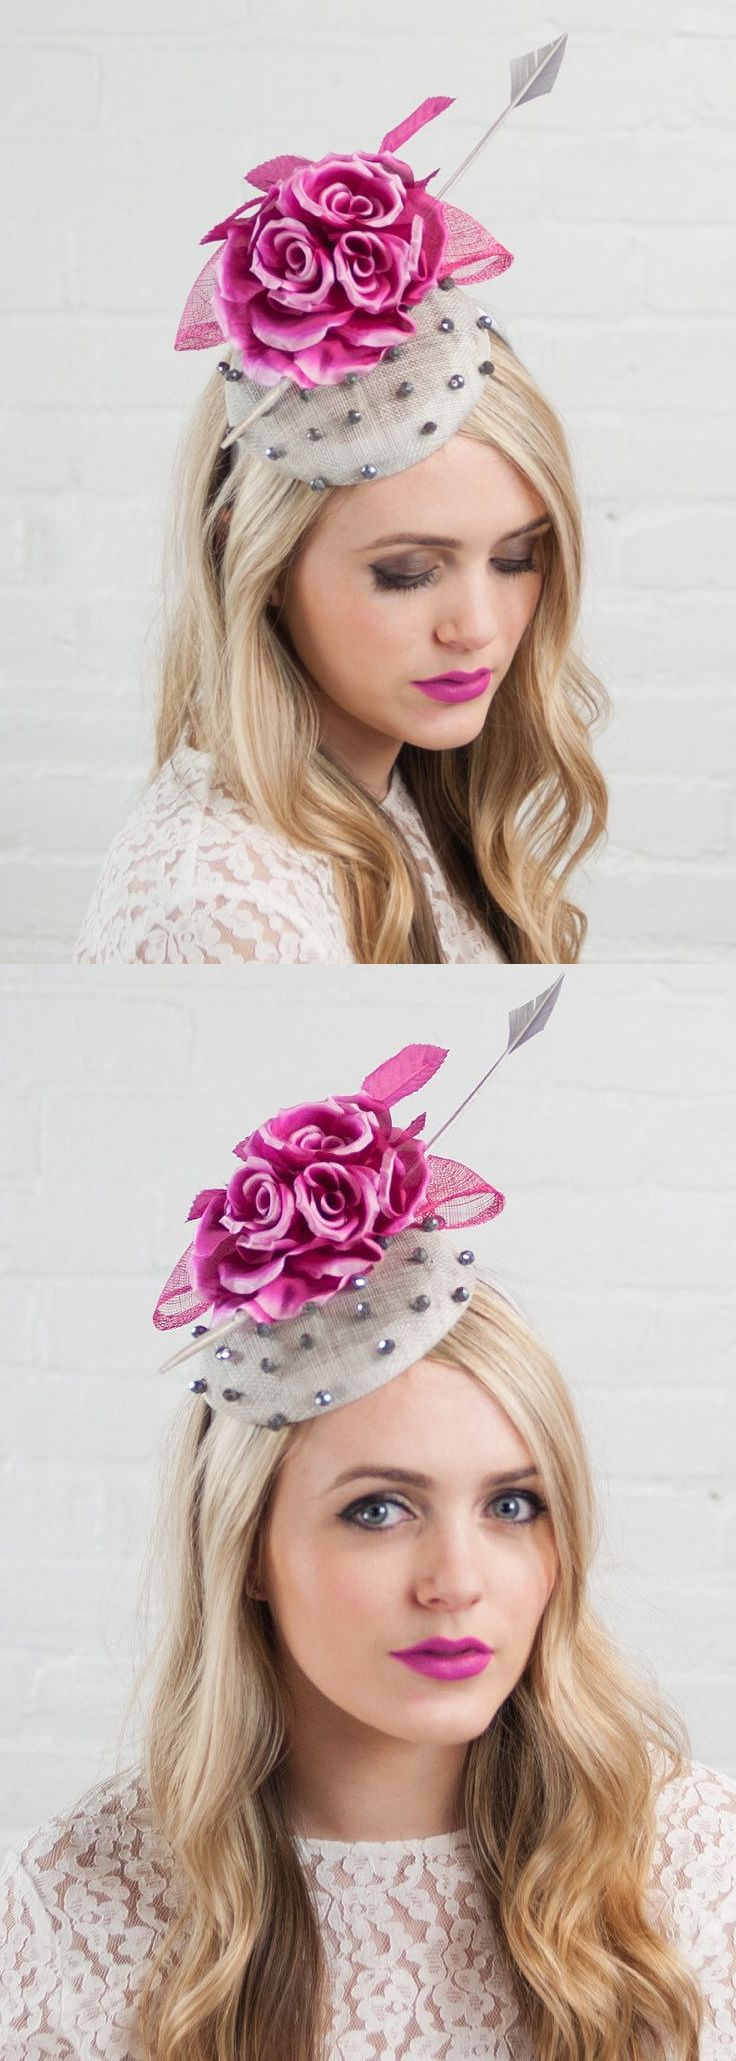 Dotted Pink Silver Floral Fascinator Hat, Hatinator. Fascinator for Kentucky Derby, Oaks Day, Royal Ascot Ladies Day, Del Mar racing fashion outfit ideas. Fashionista hats and headpieces for the races, Mother of the Bride, Kentucky Derby, spring summer Wedding guest outfits. #racingfashion #fashionsonthefield #royalascot #kentuckyderby #hats #millinery #derbyhats #fashion #fashionista #affiliatelink #ootd #floralhats #fascinators #etsyfinds #kentuckyderbyoutfits #etsy #shopsmall